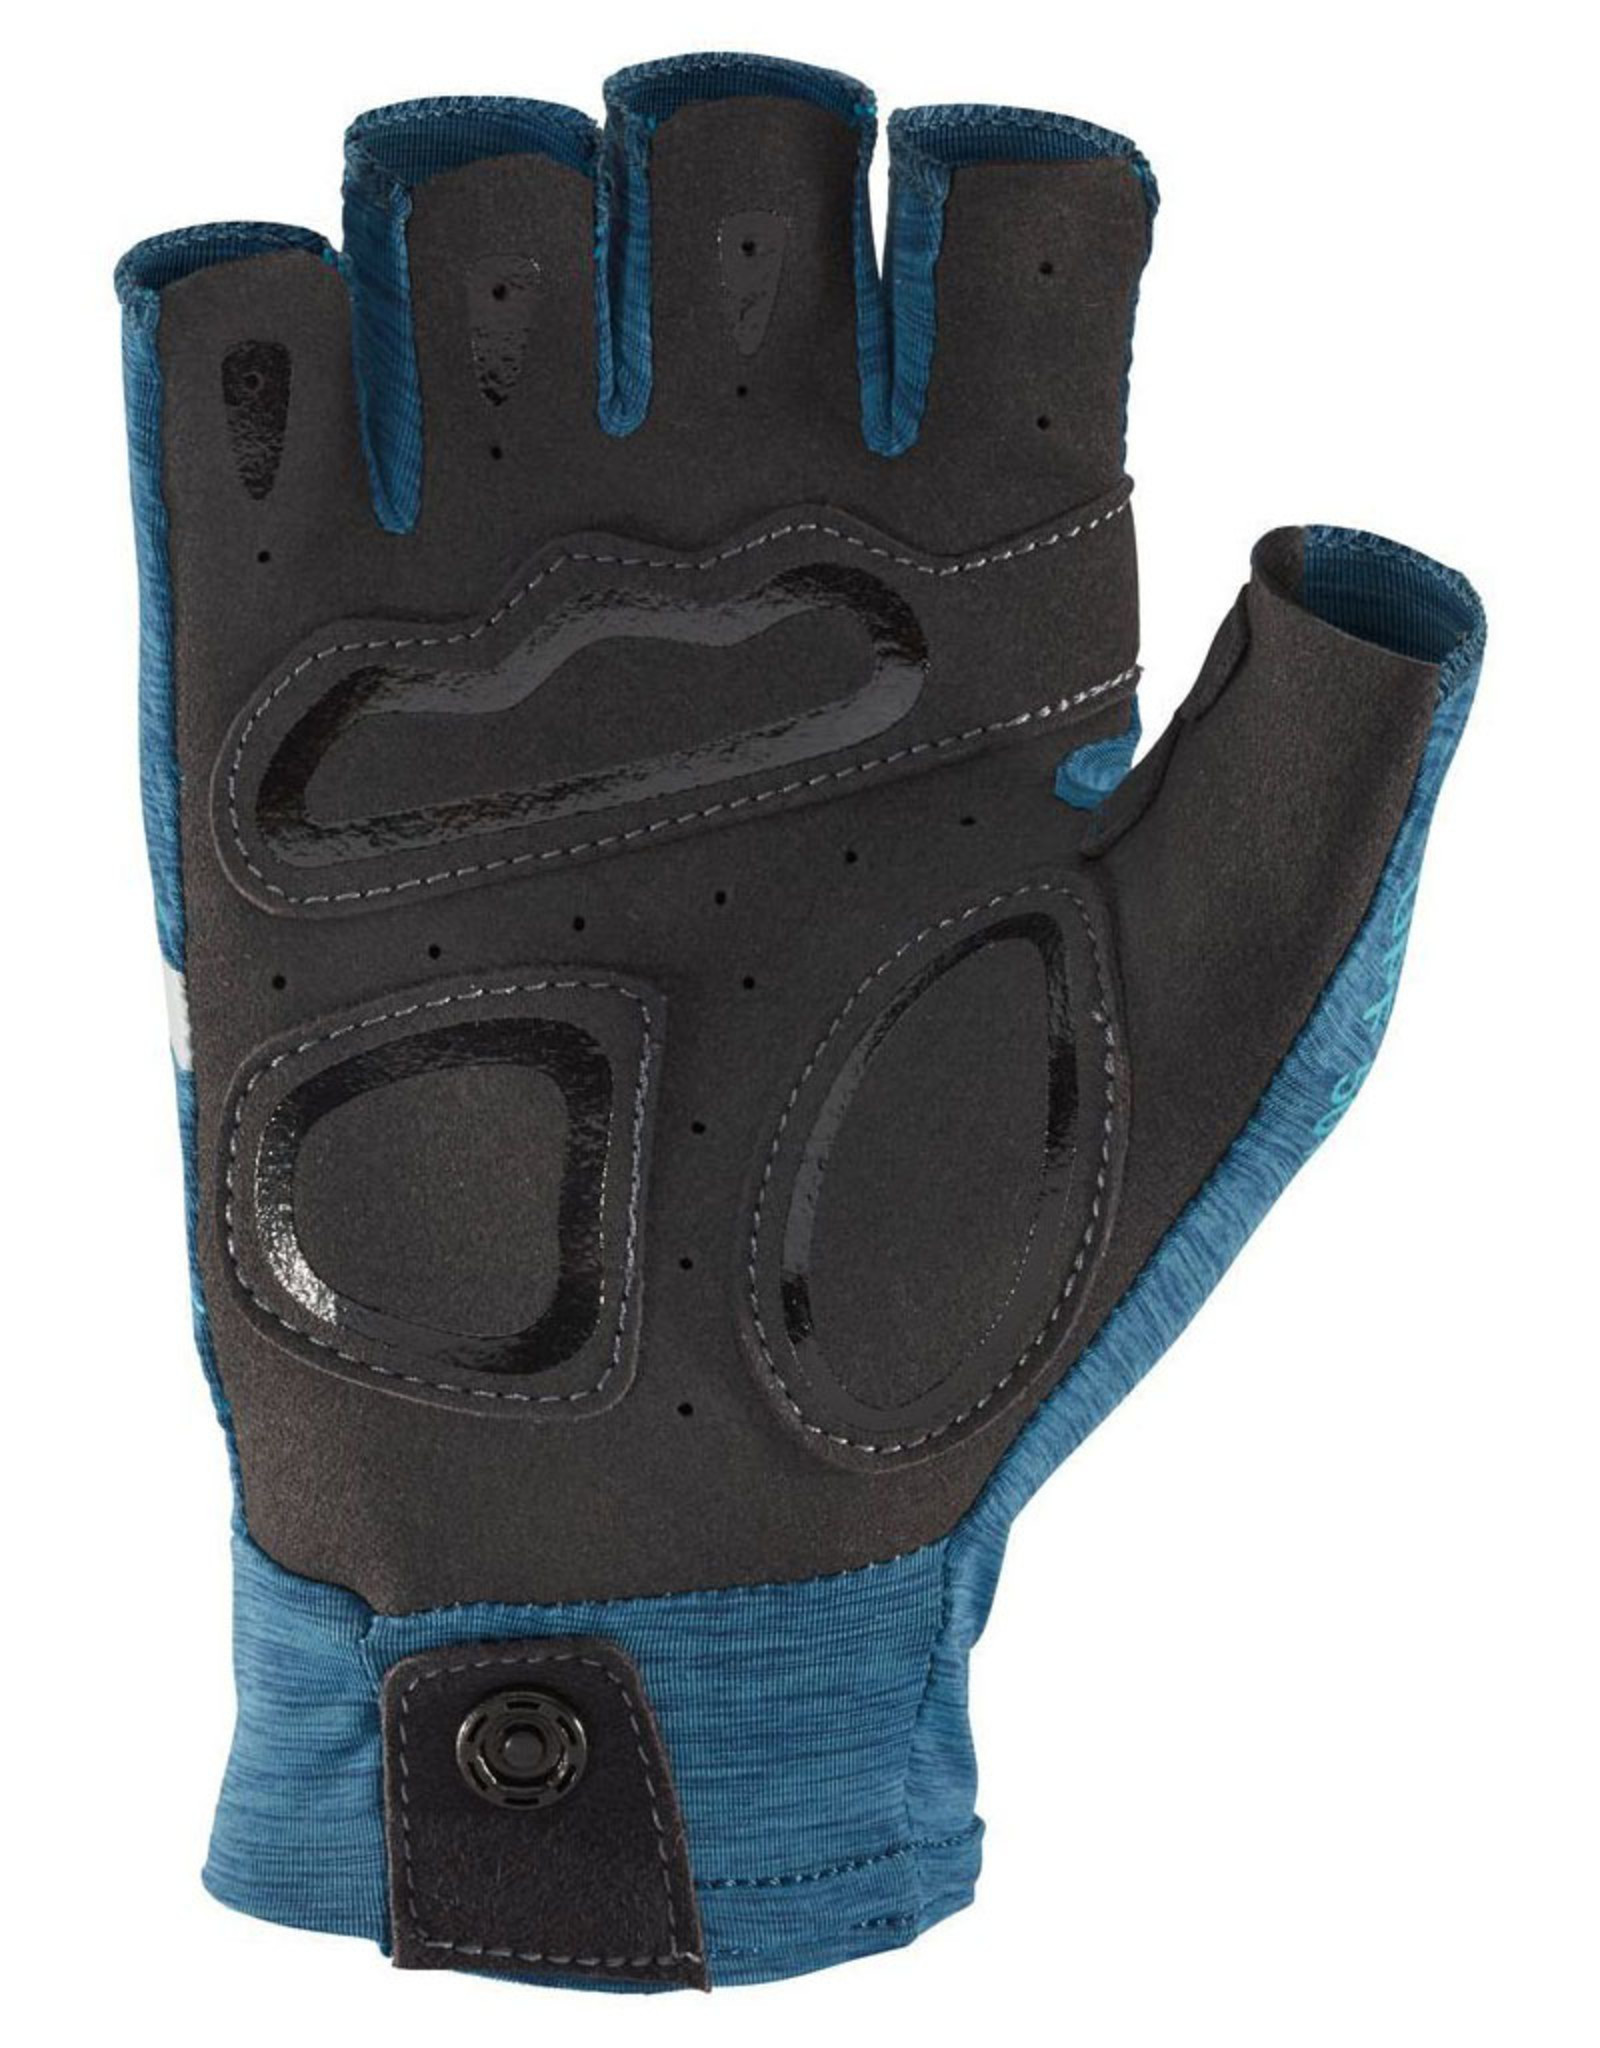 NRS NRS Boater's Glove